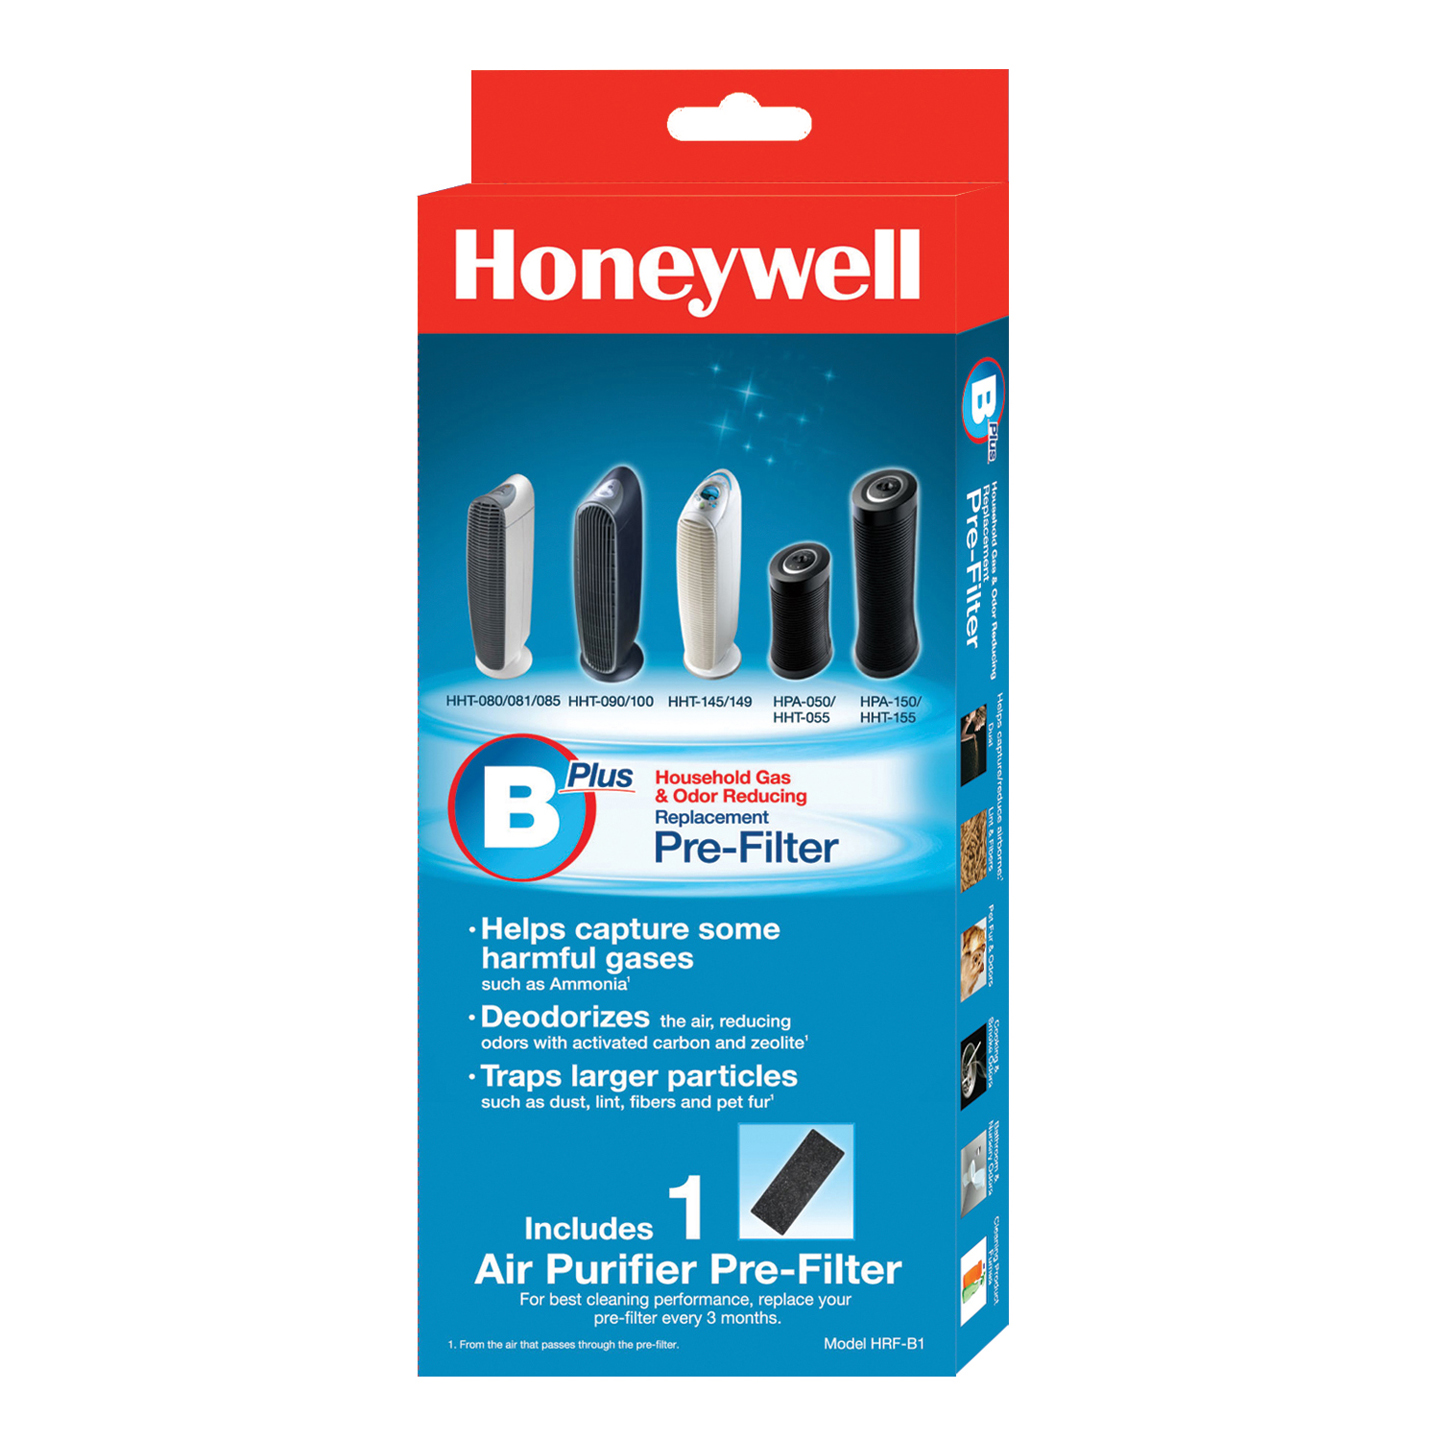 HRF-B1 Honeywell Household Odor and Gas Reducing Pre-filter HONEYWELL-HRF-B1